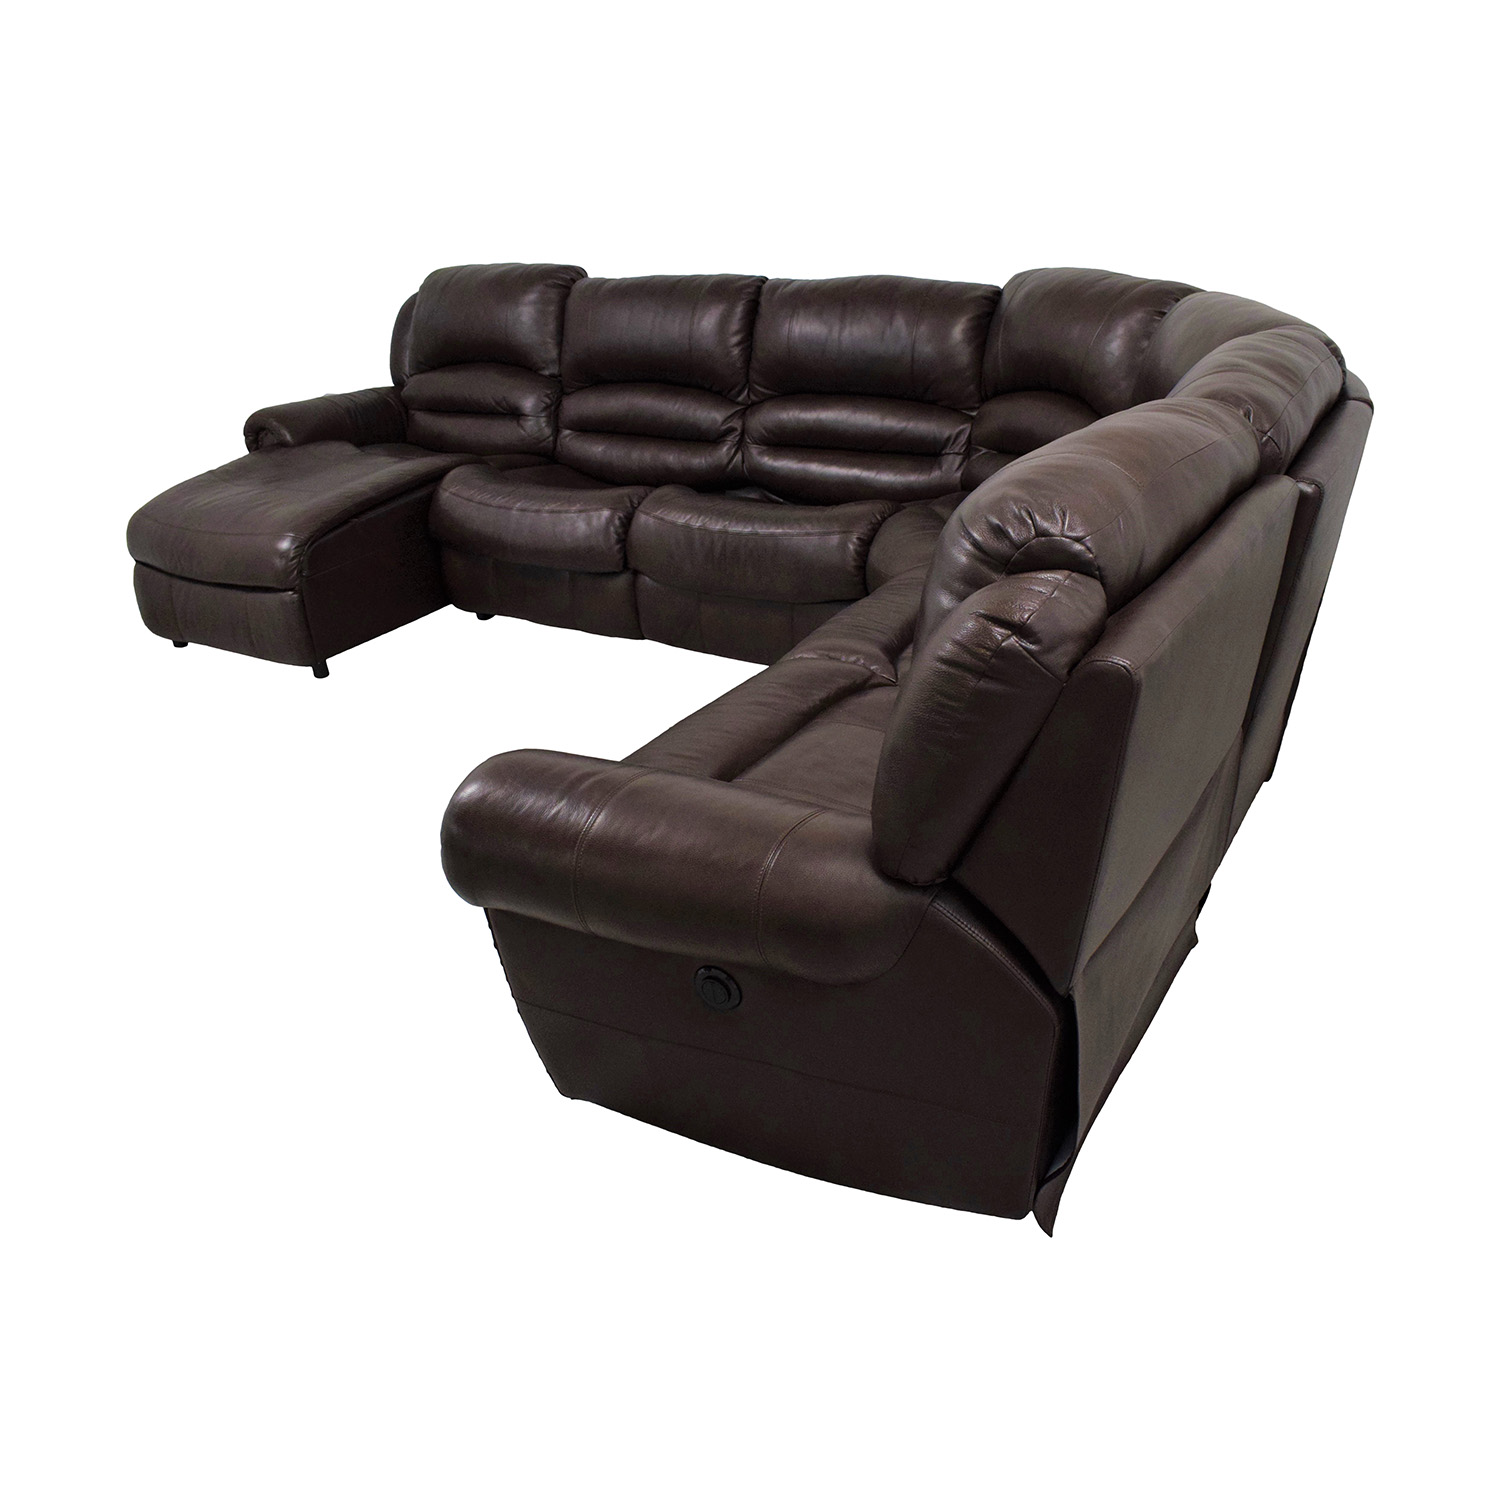 shop Raymour & Flanigan Chaise Recliner Sectional Sleeper Sofa Raymour & Flanigan Sectionals